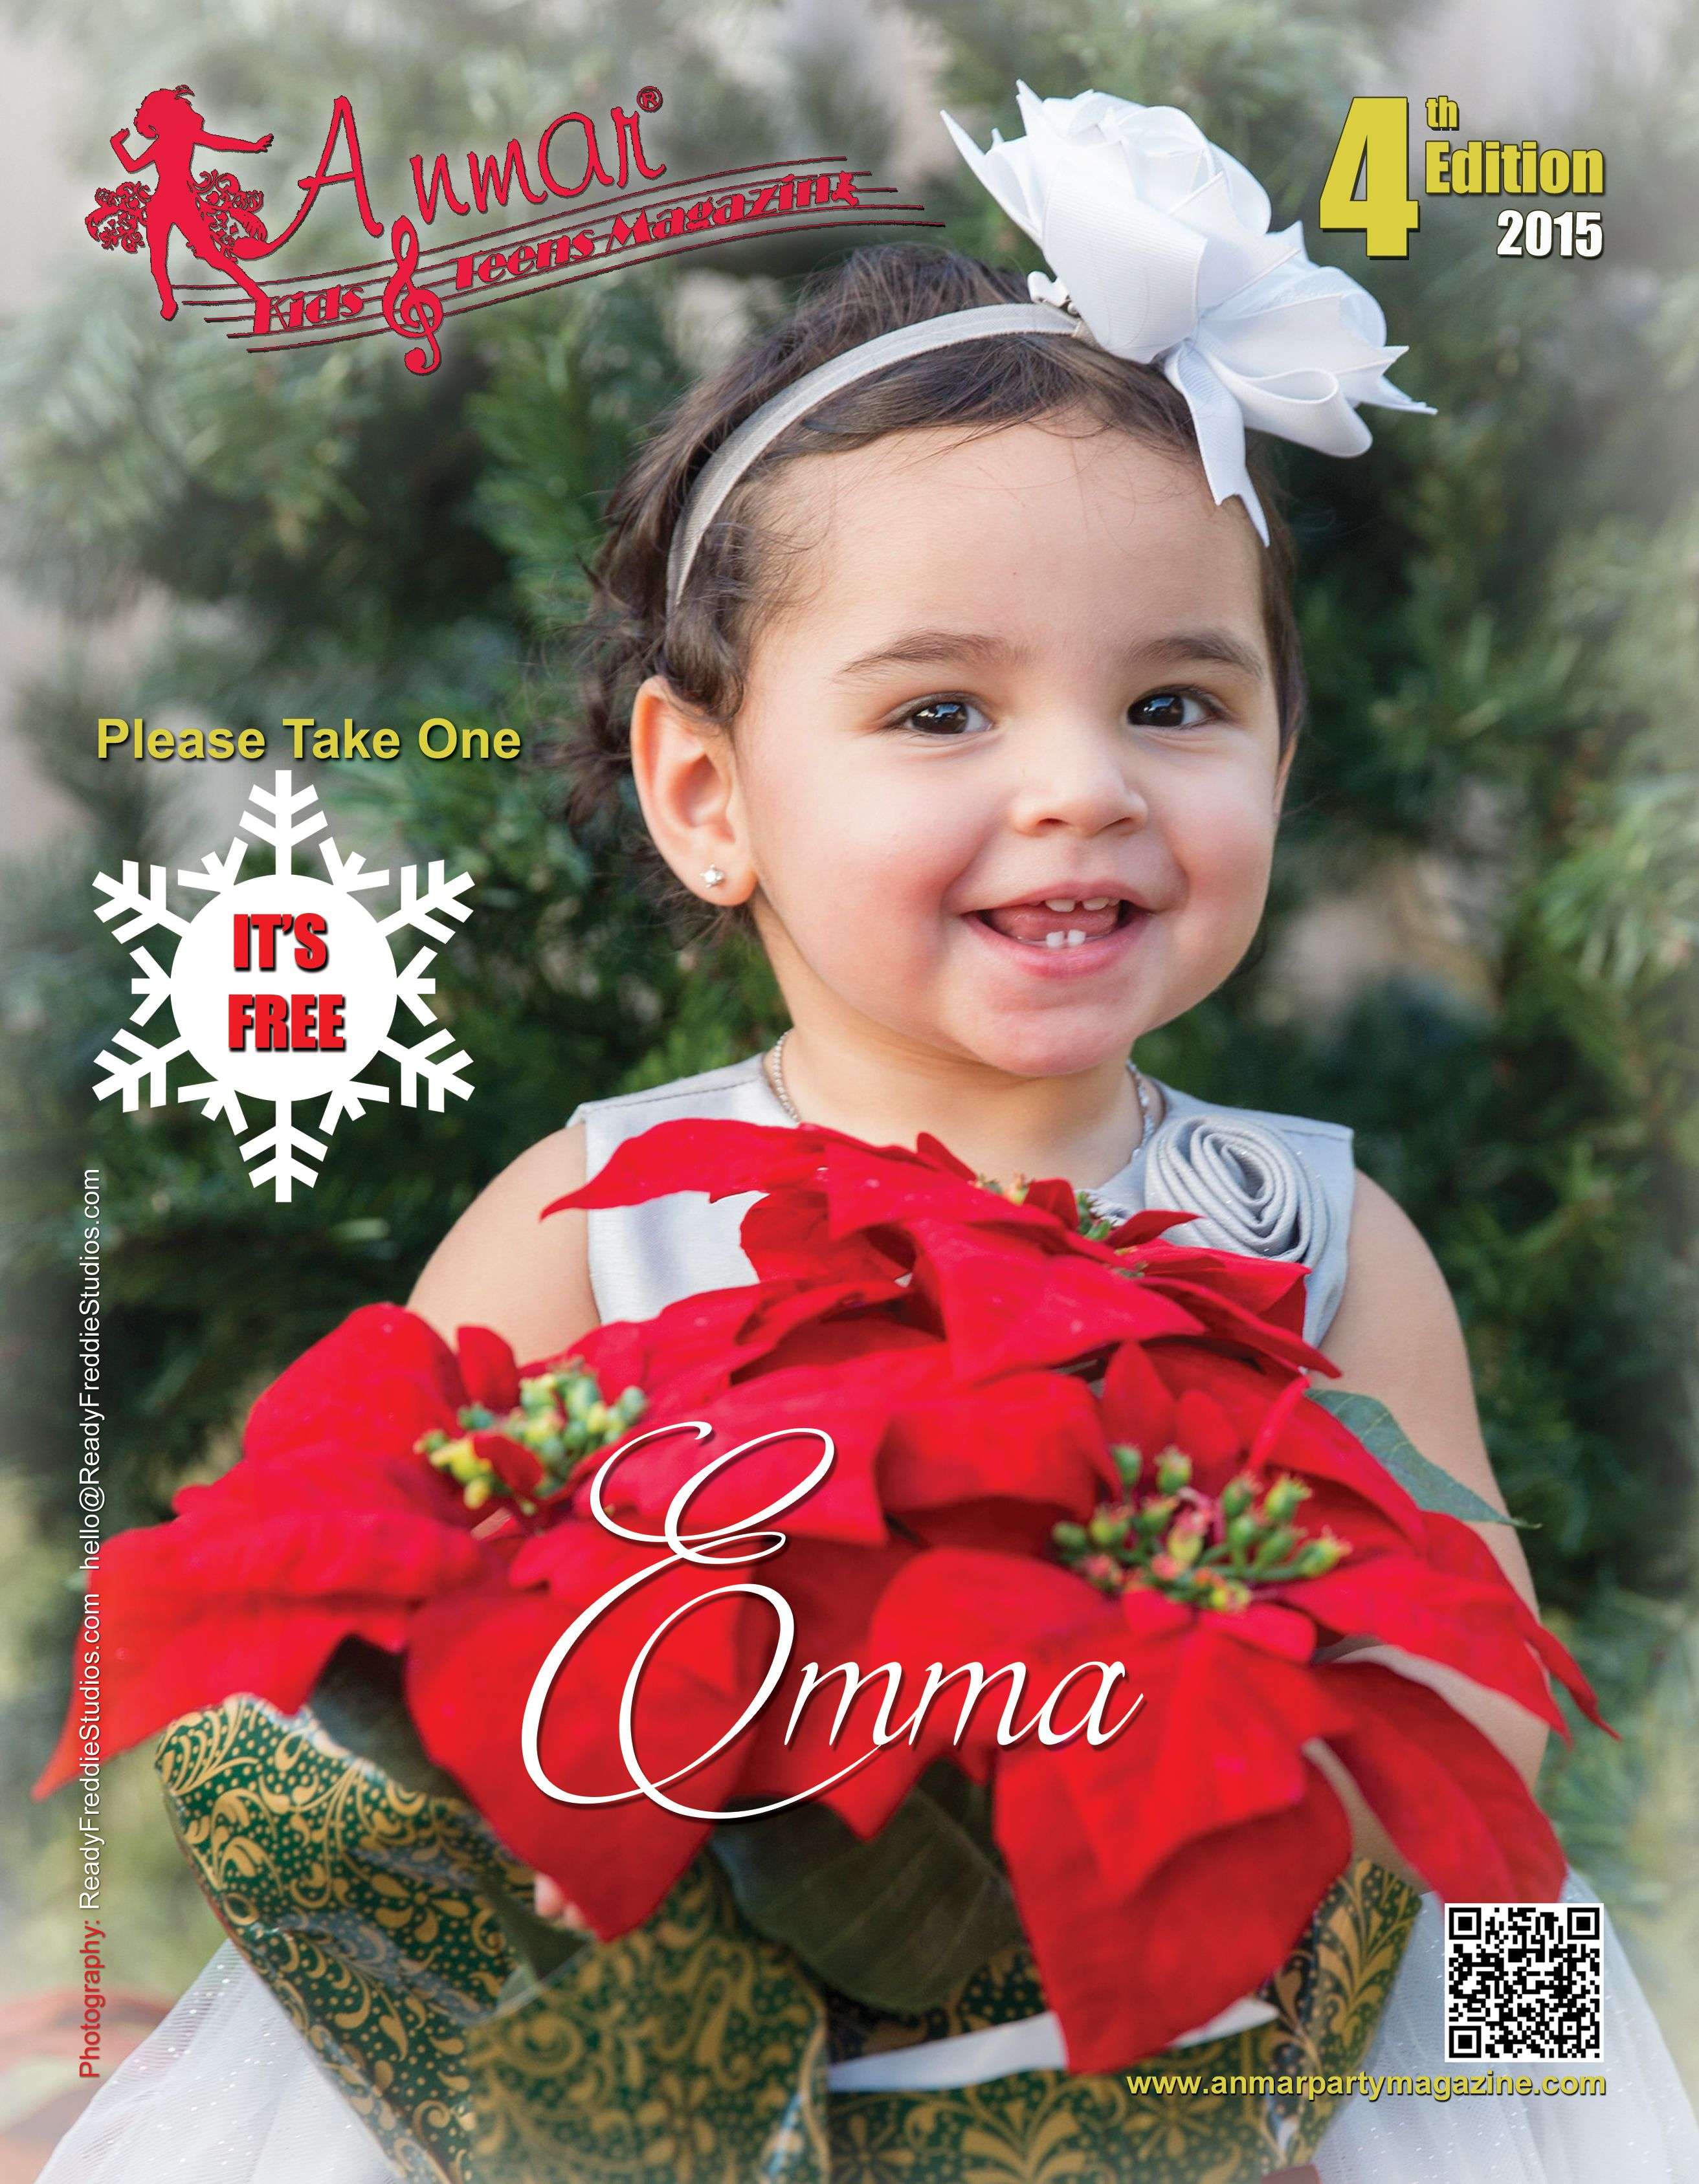 Anmar Kids and Teens Magazine 4th  Edition on Line only